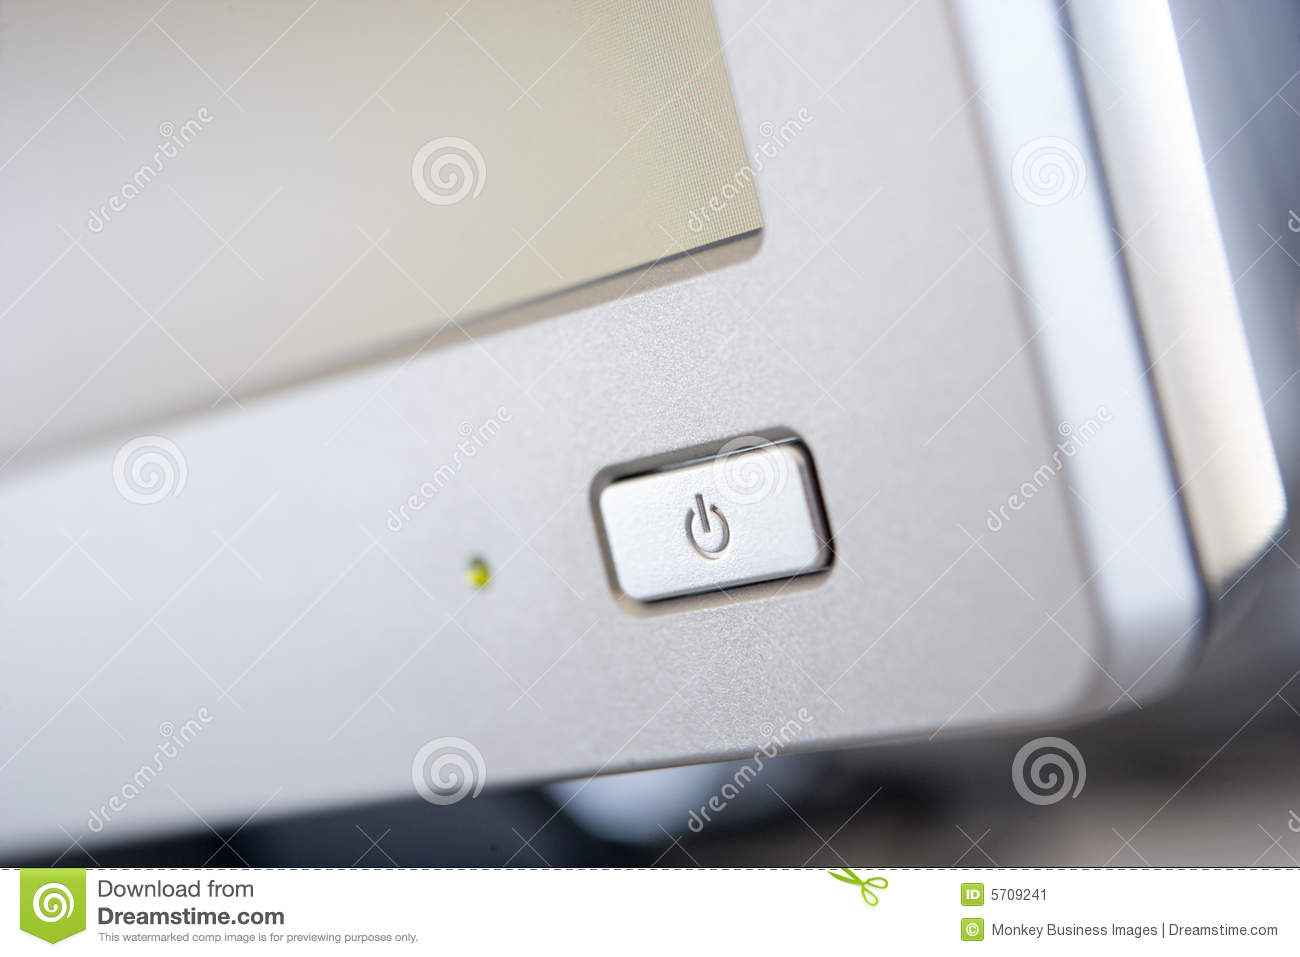 Monitor Power Button : Shot of a power button on computer monitor stock image